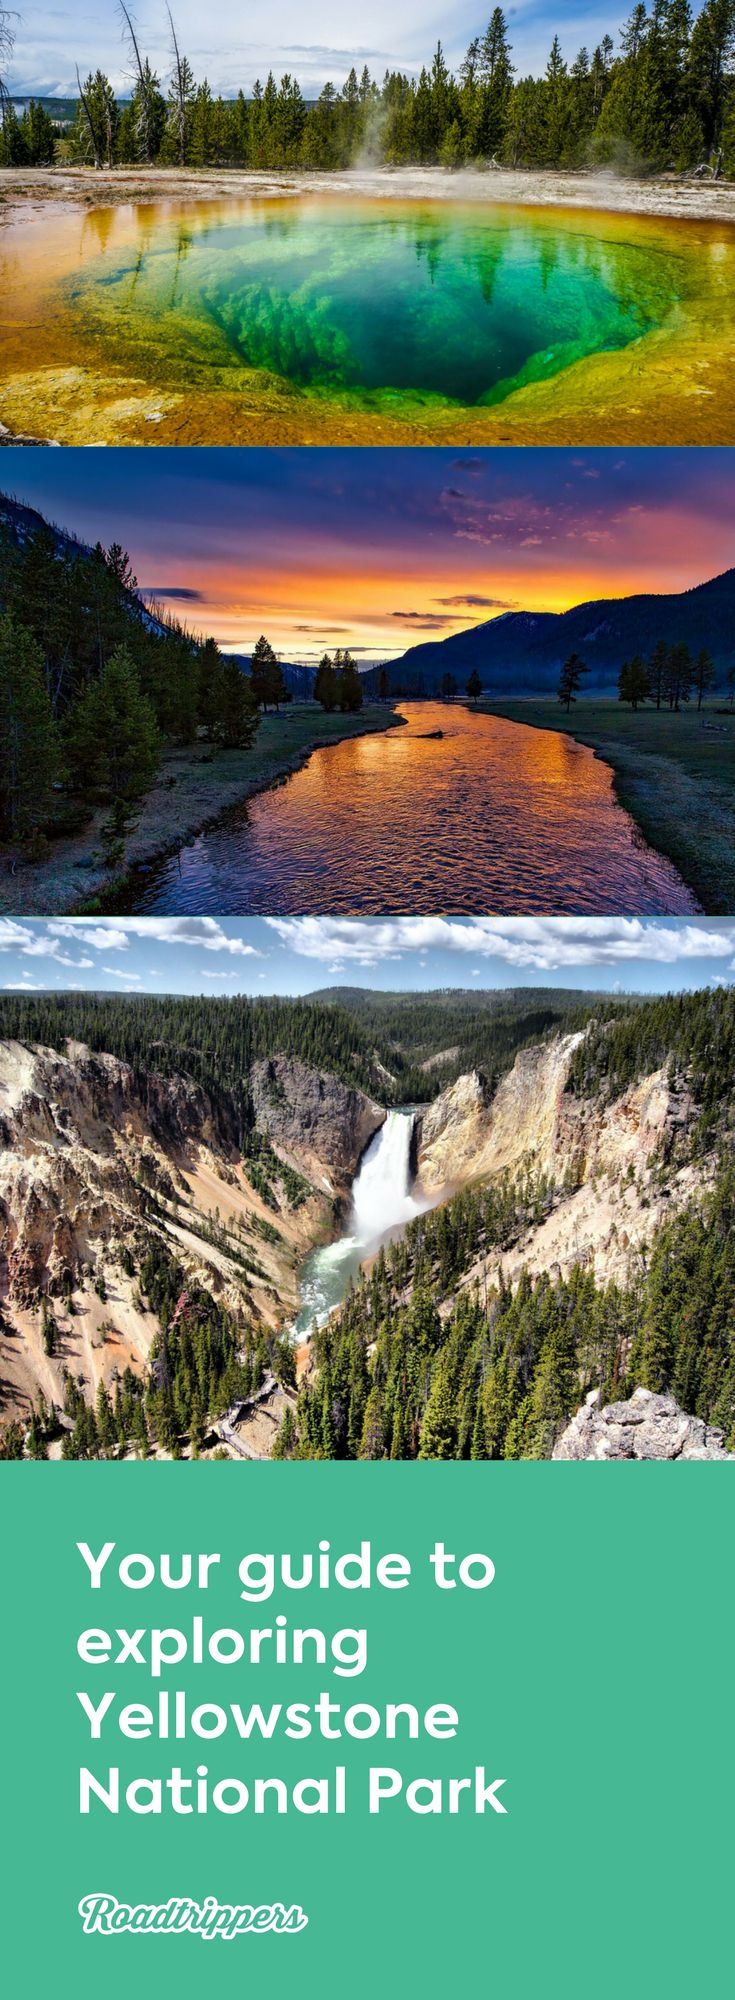 Yellowstone National Park Guide America s 1st National Park